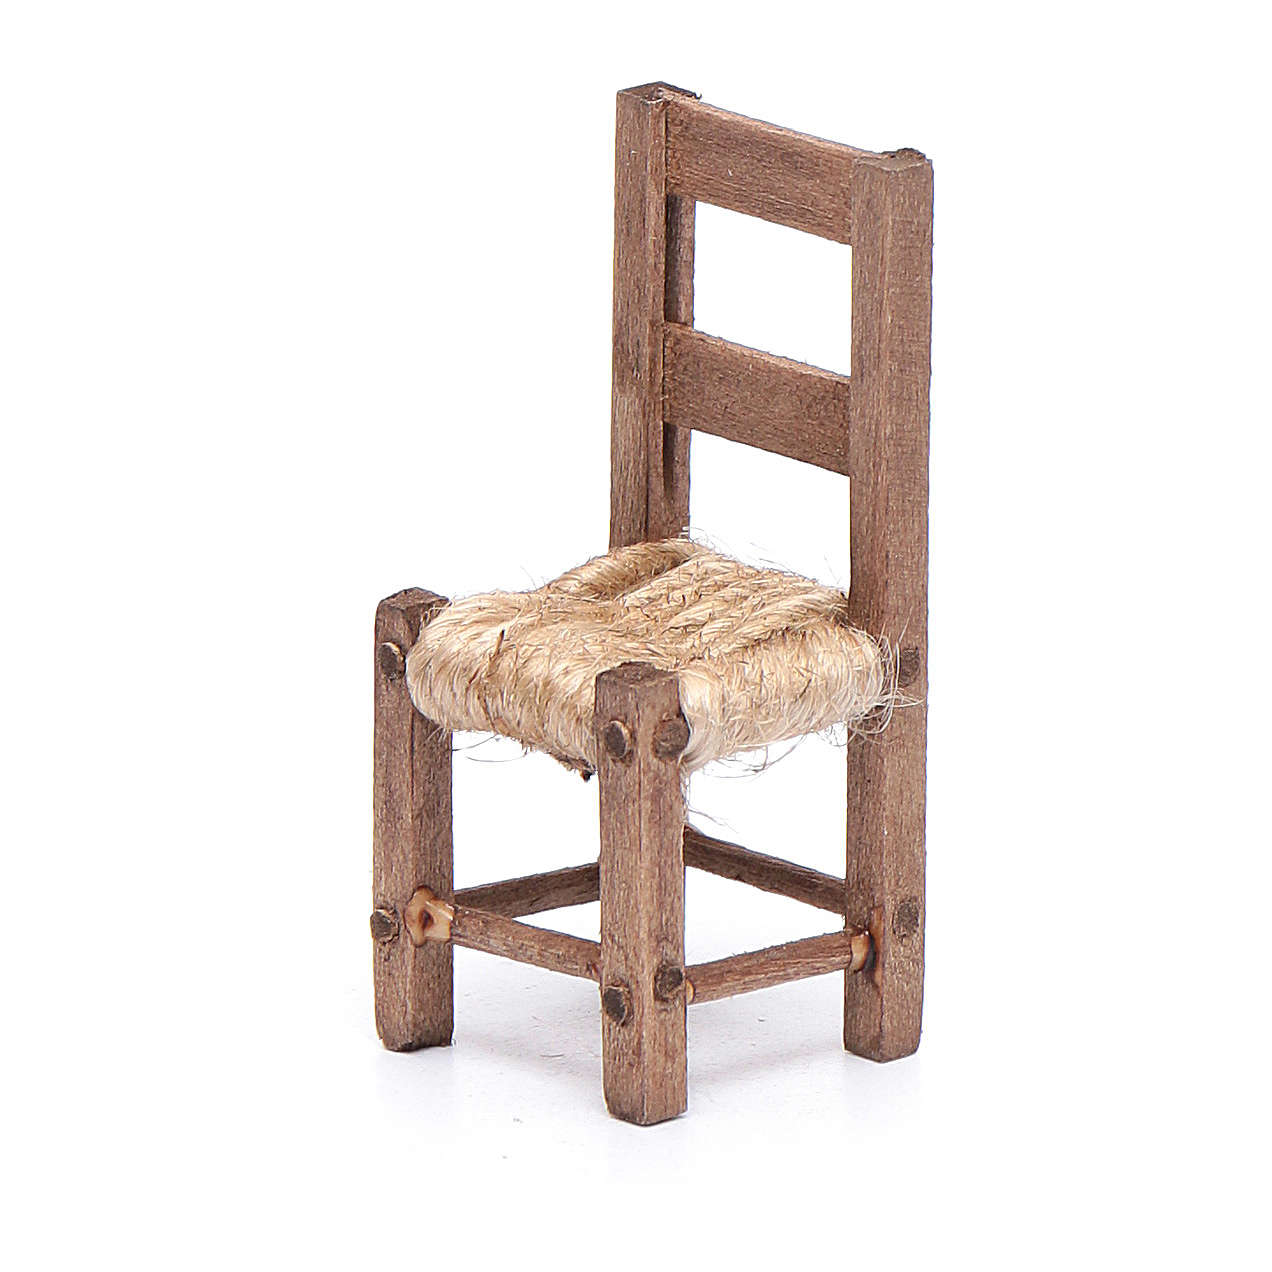 Chair in wood and rope 5 cm, Neapolitan nativity scene 4